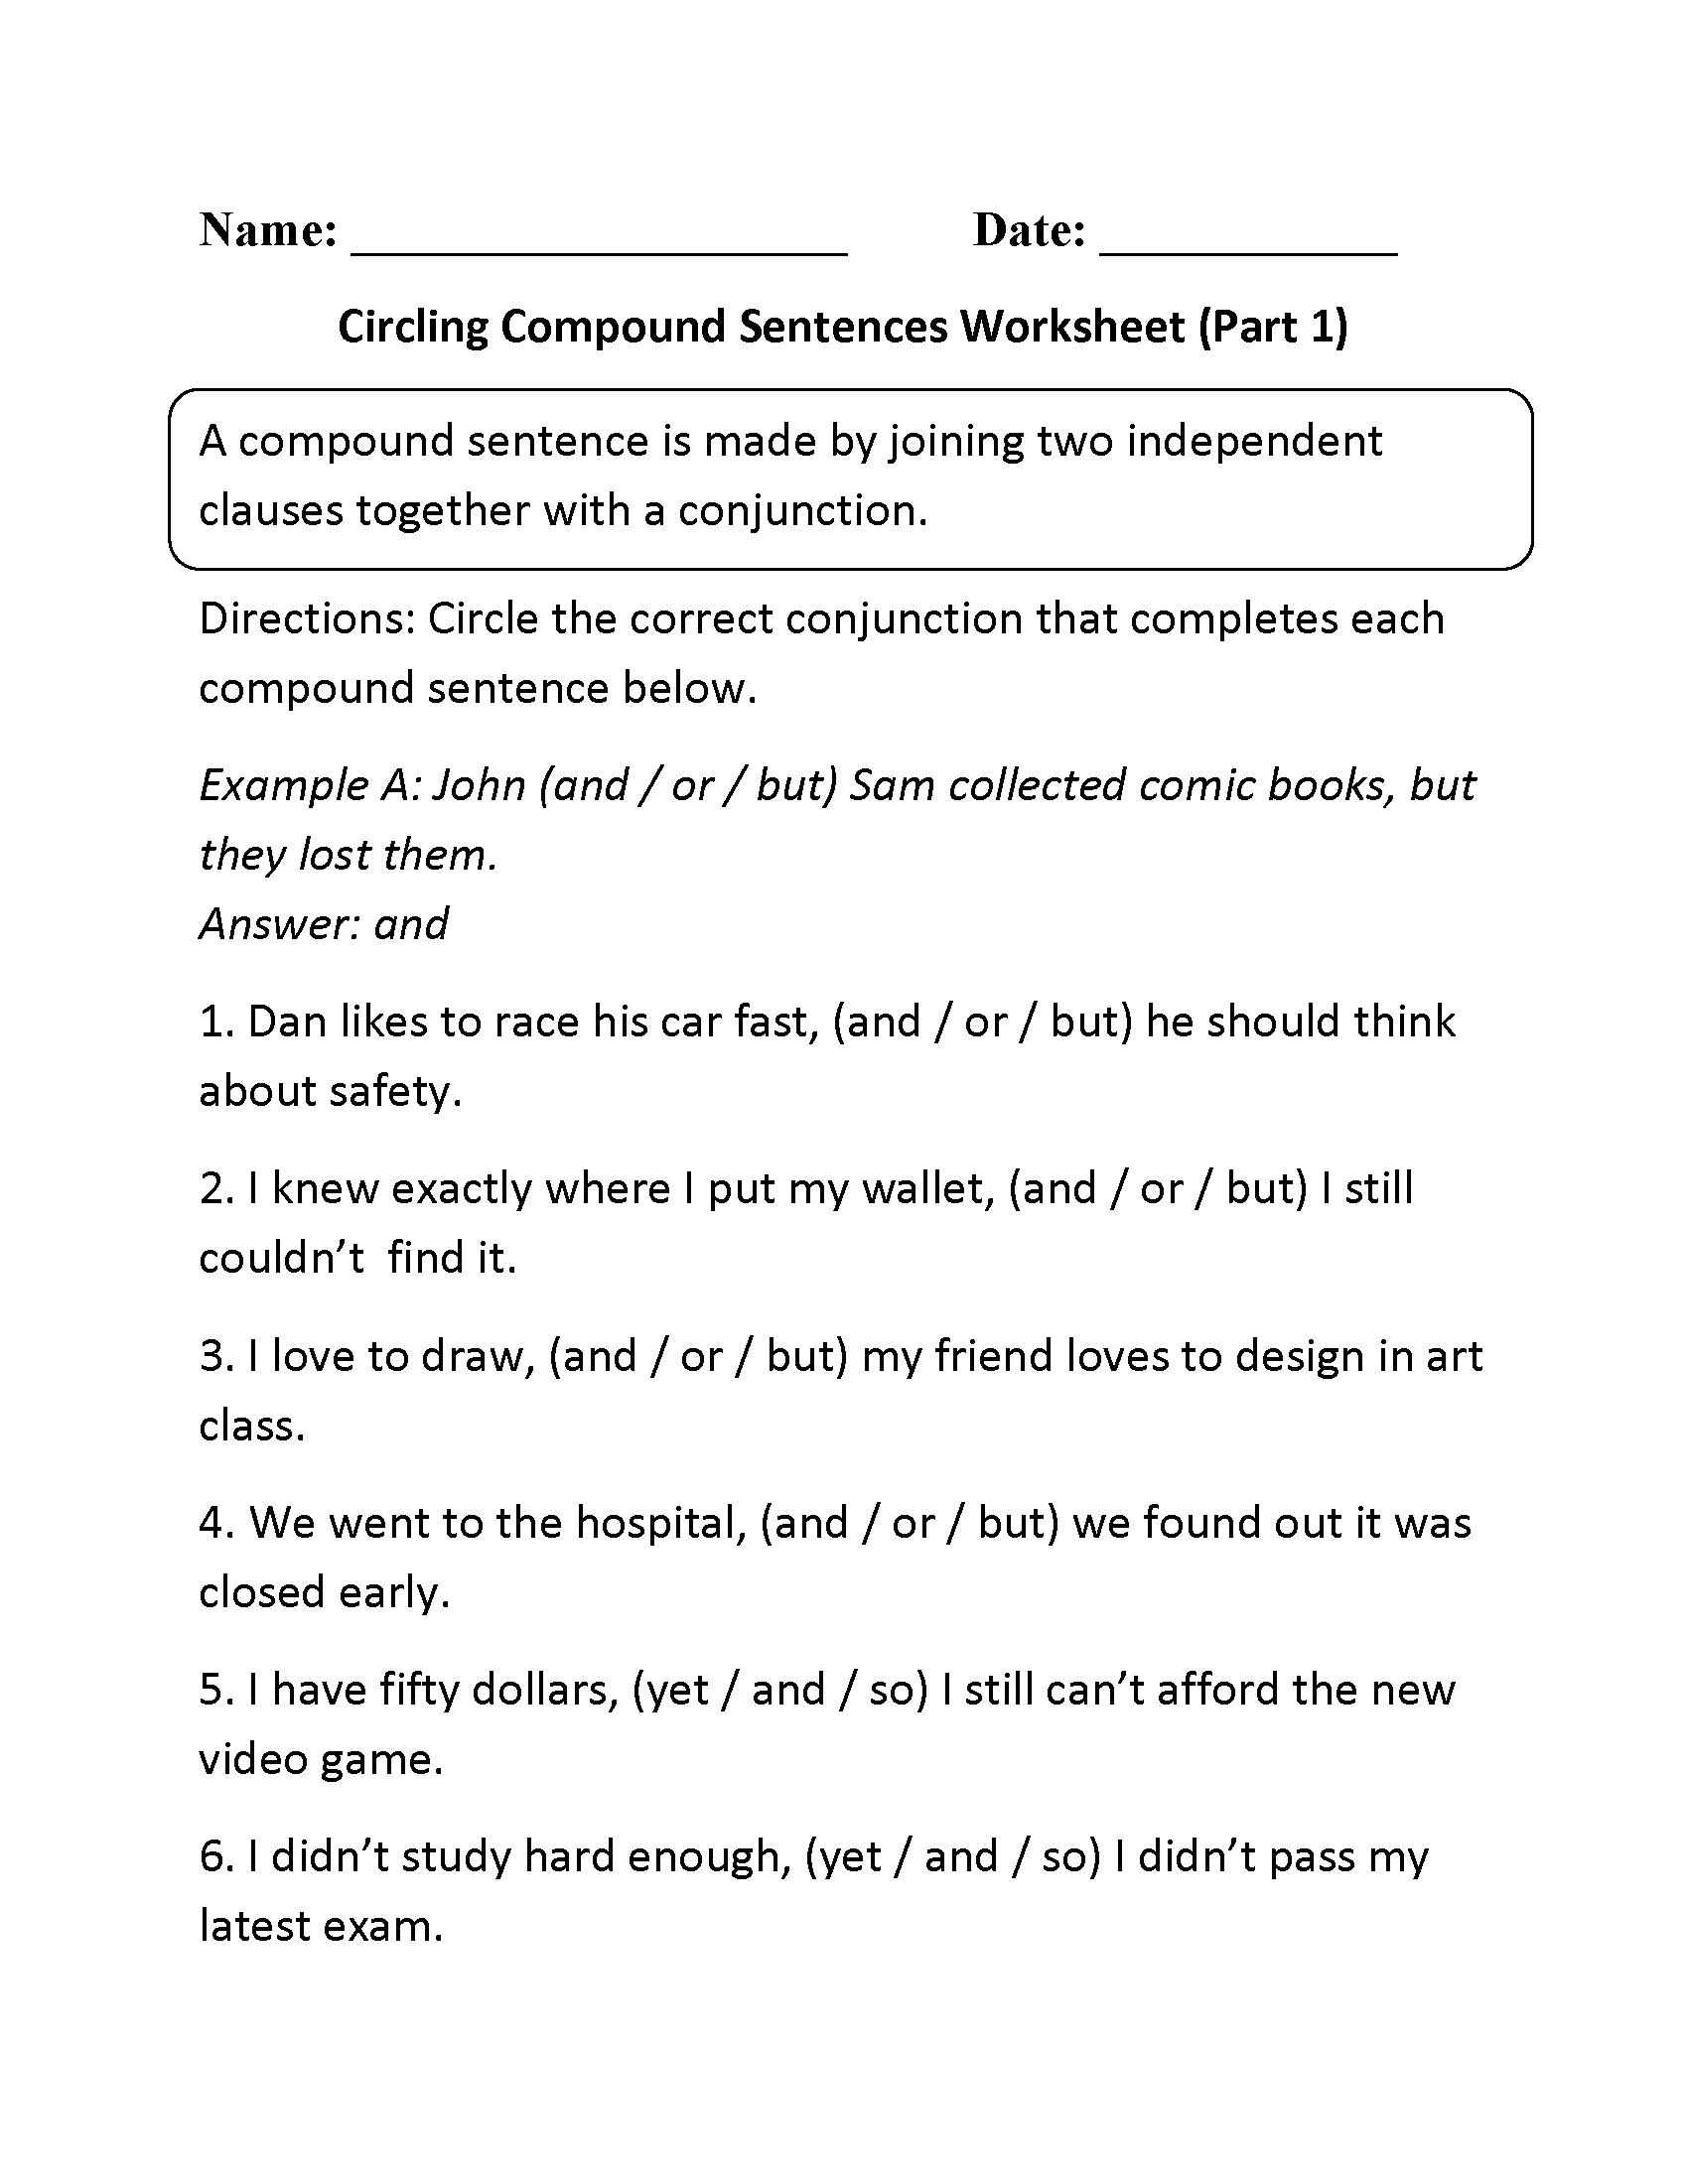 Worksheets Compound Sentence Worksheets compound sentences worksheets circling worksheet